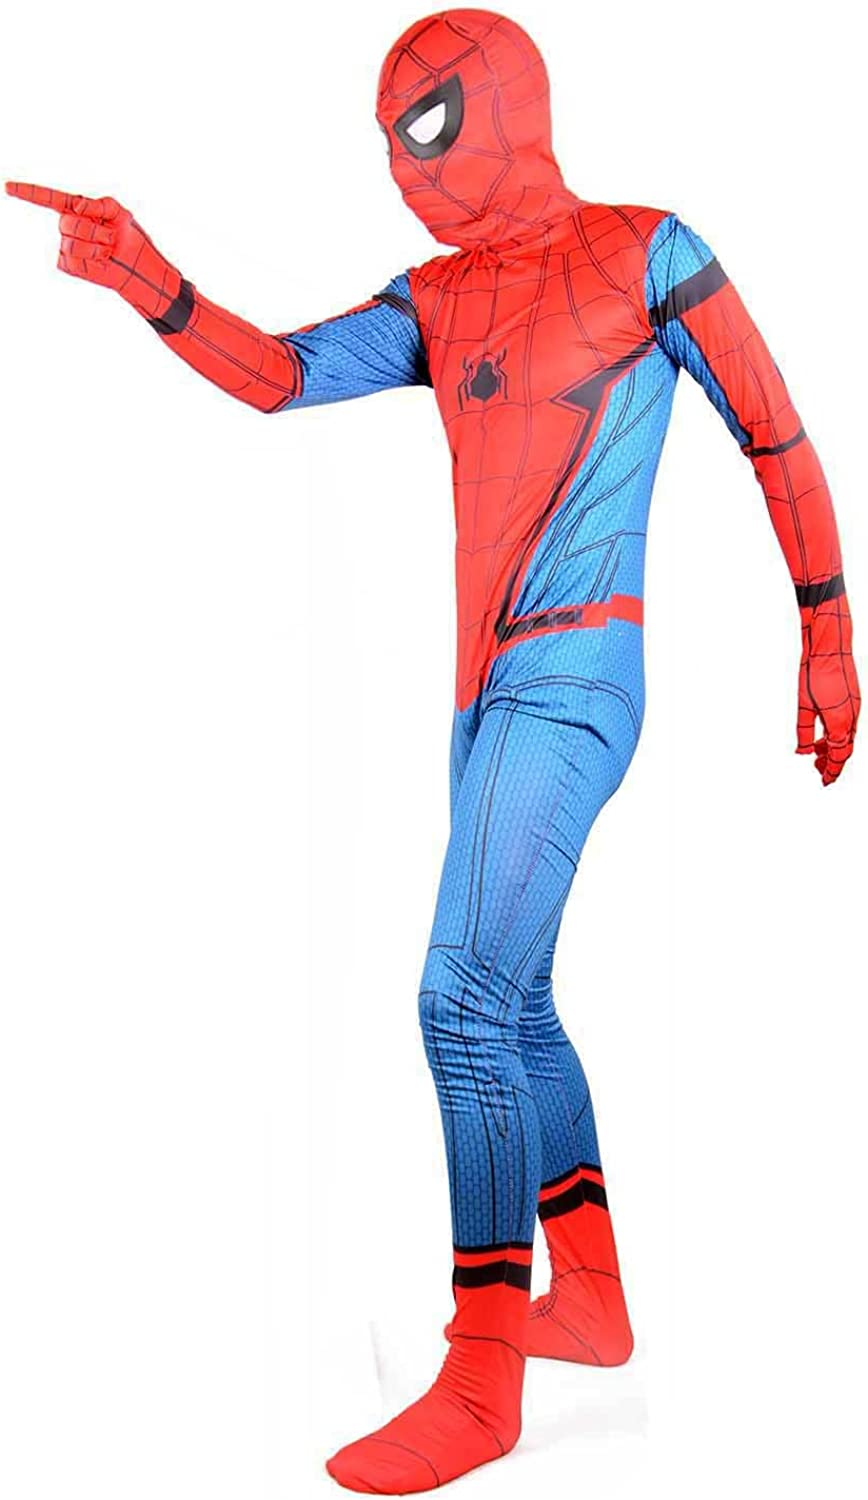 Wraith of East Red Superhero Suit Party Cosplay Halloween Costume Kids